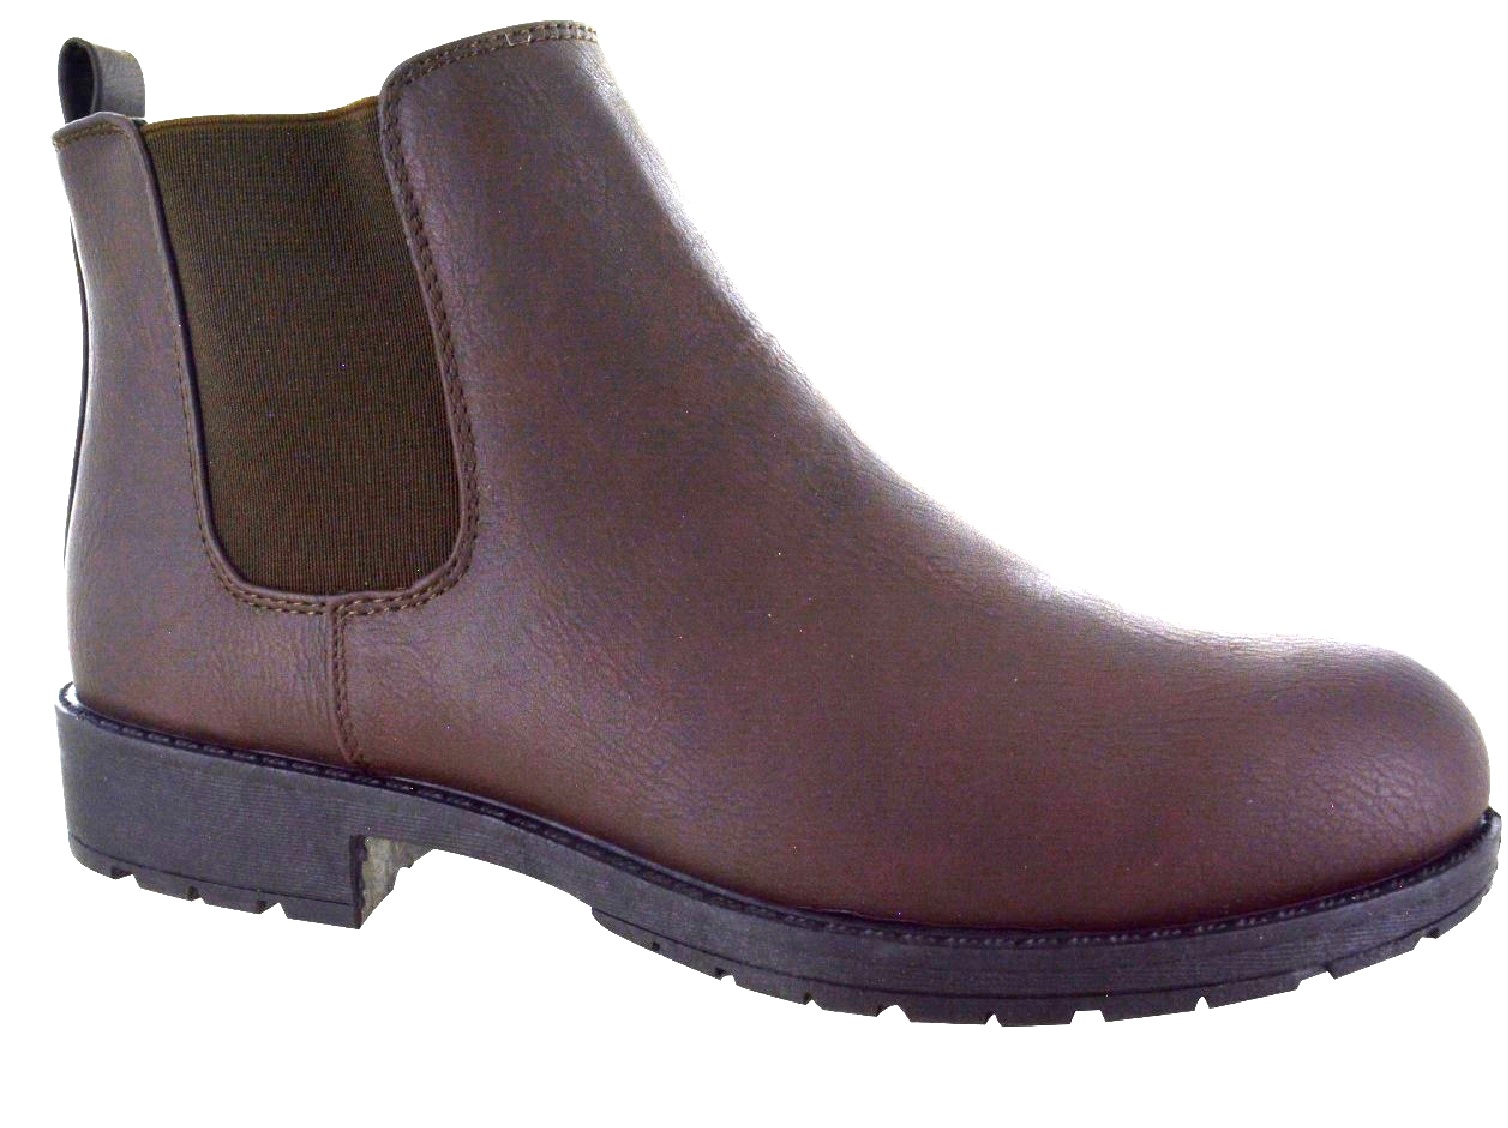 LADIES-WOMENS-CHELSEA-DEALER-SLIP-ON-FLAT-ANKLE-CAUSAL-LOW-HEEL-SHOES-BOOTS-SIZE thumbnail 5